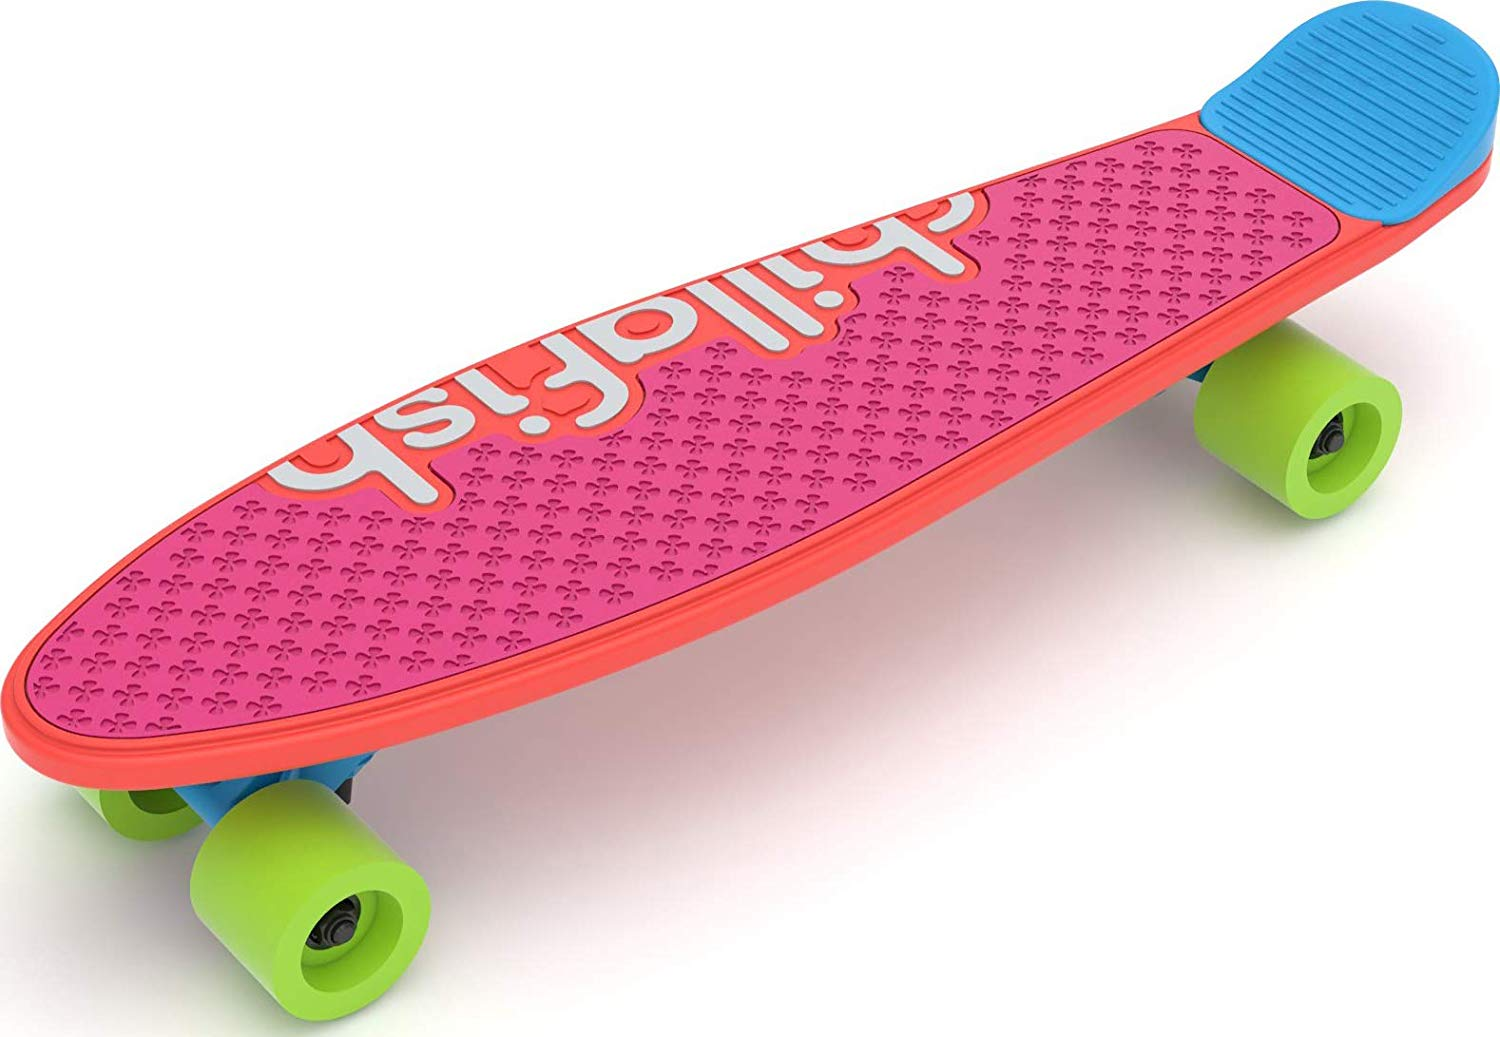 chillafish Skateboard amazon